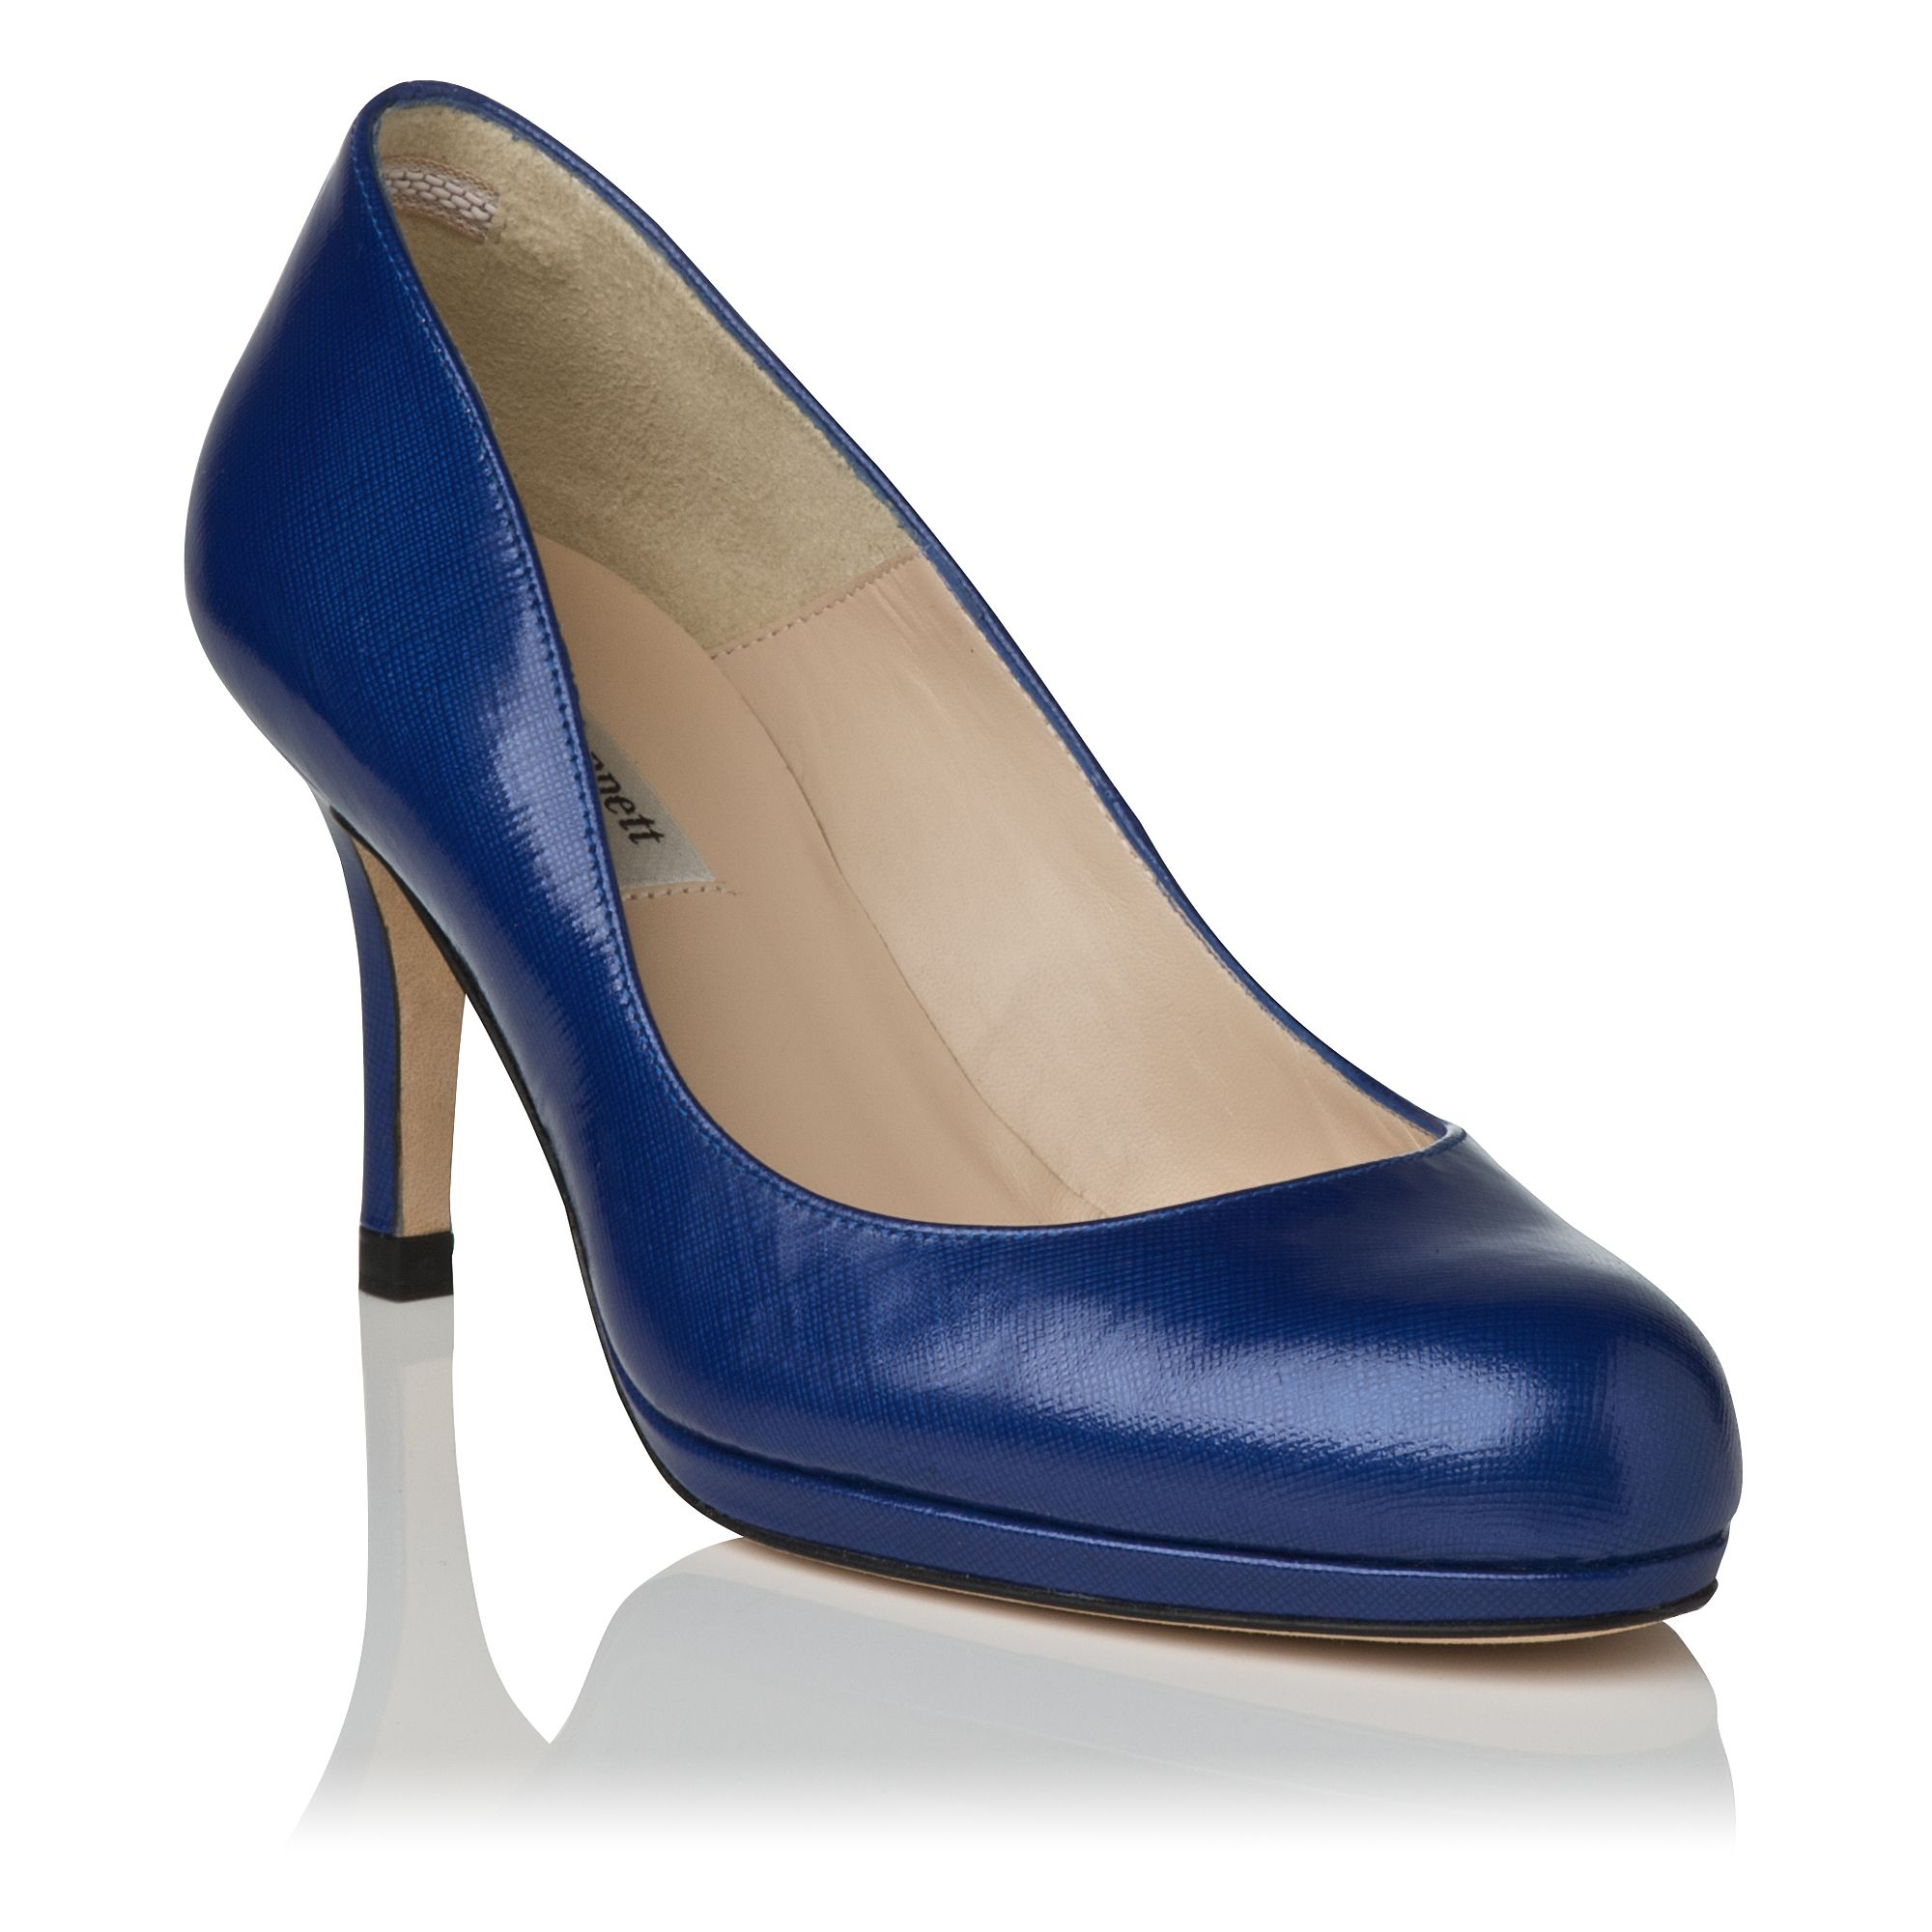 Sybila round toe platform court shoes